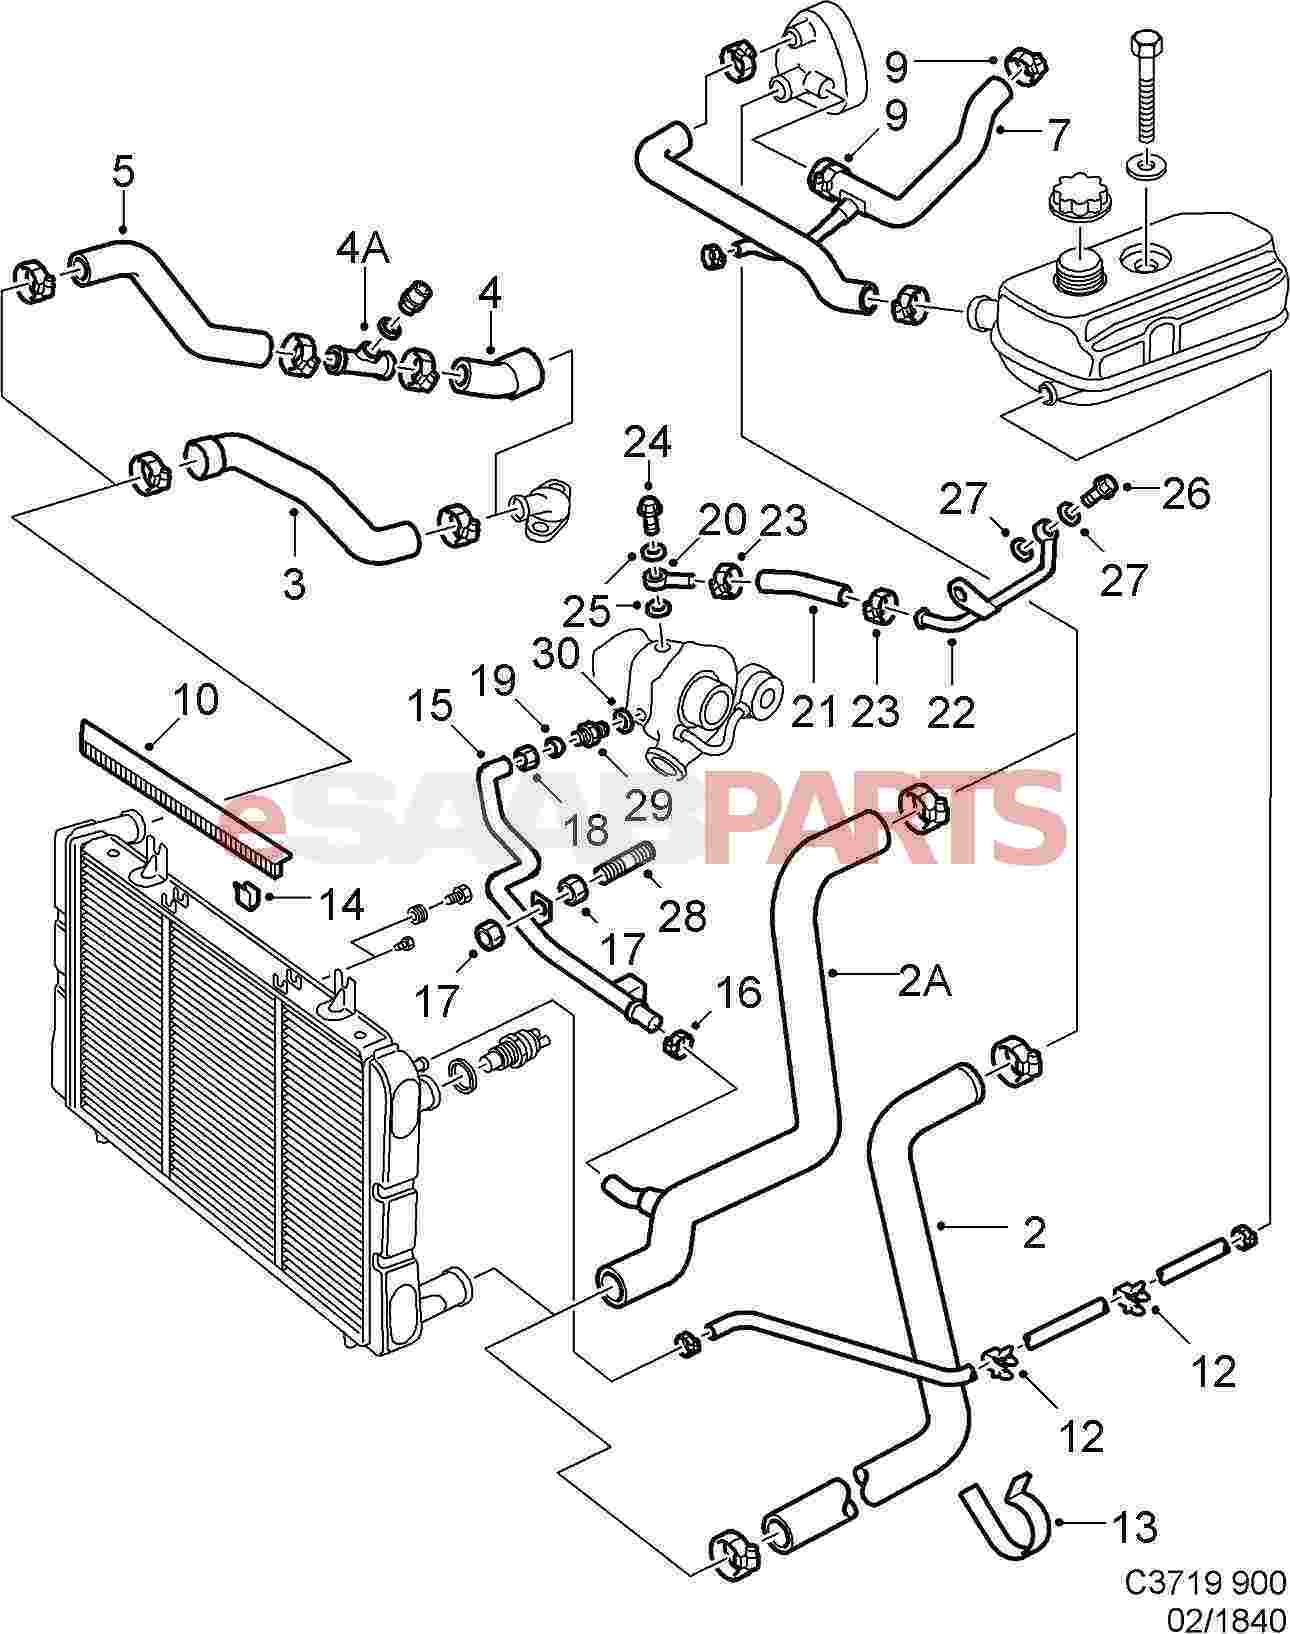 passat b6 engine diagram free wiring diagram for you Volkwagon Jetta tiguan engine diagram wiring diagrams schematic rh 13 pelzmoden mueller de 2002 vw passat engine diagram hoses passat b6 engine wiring diagram